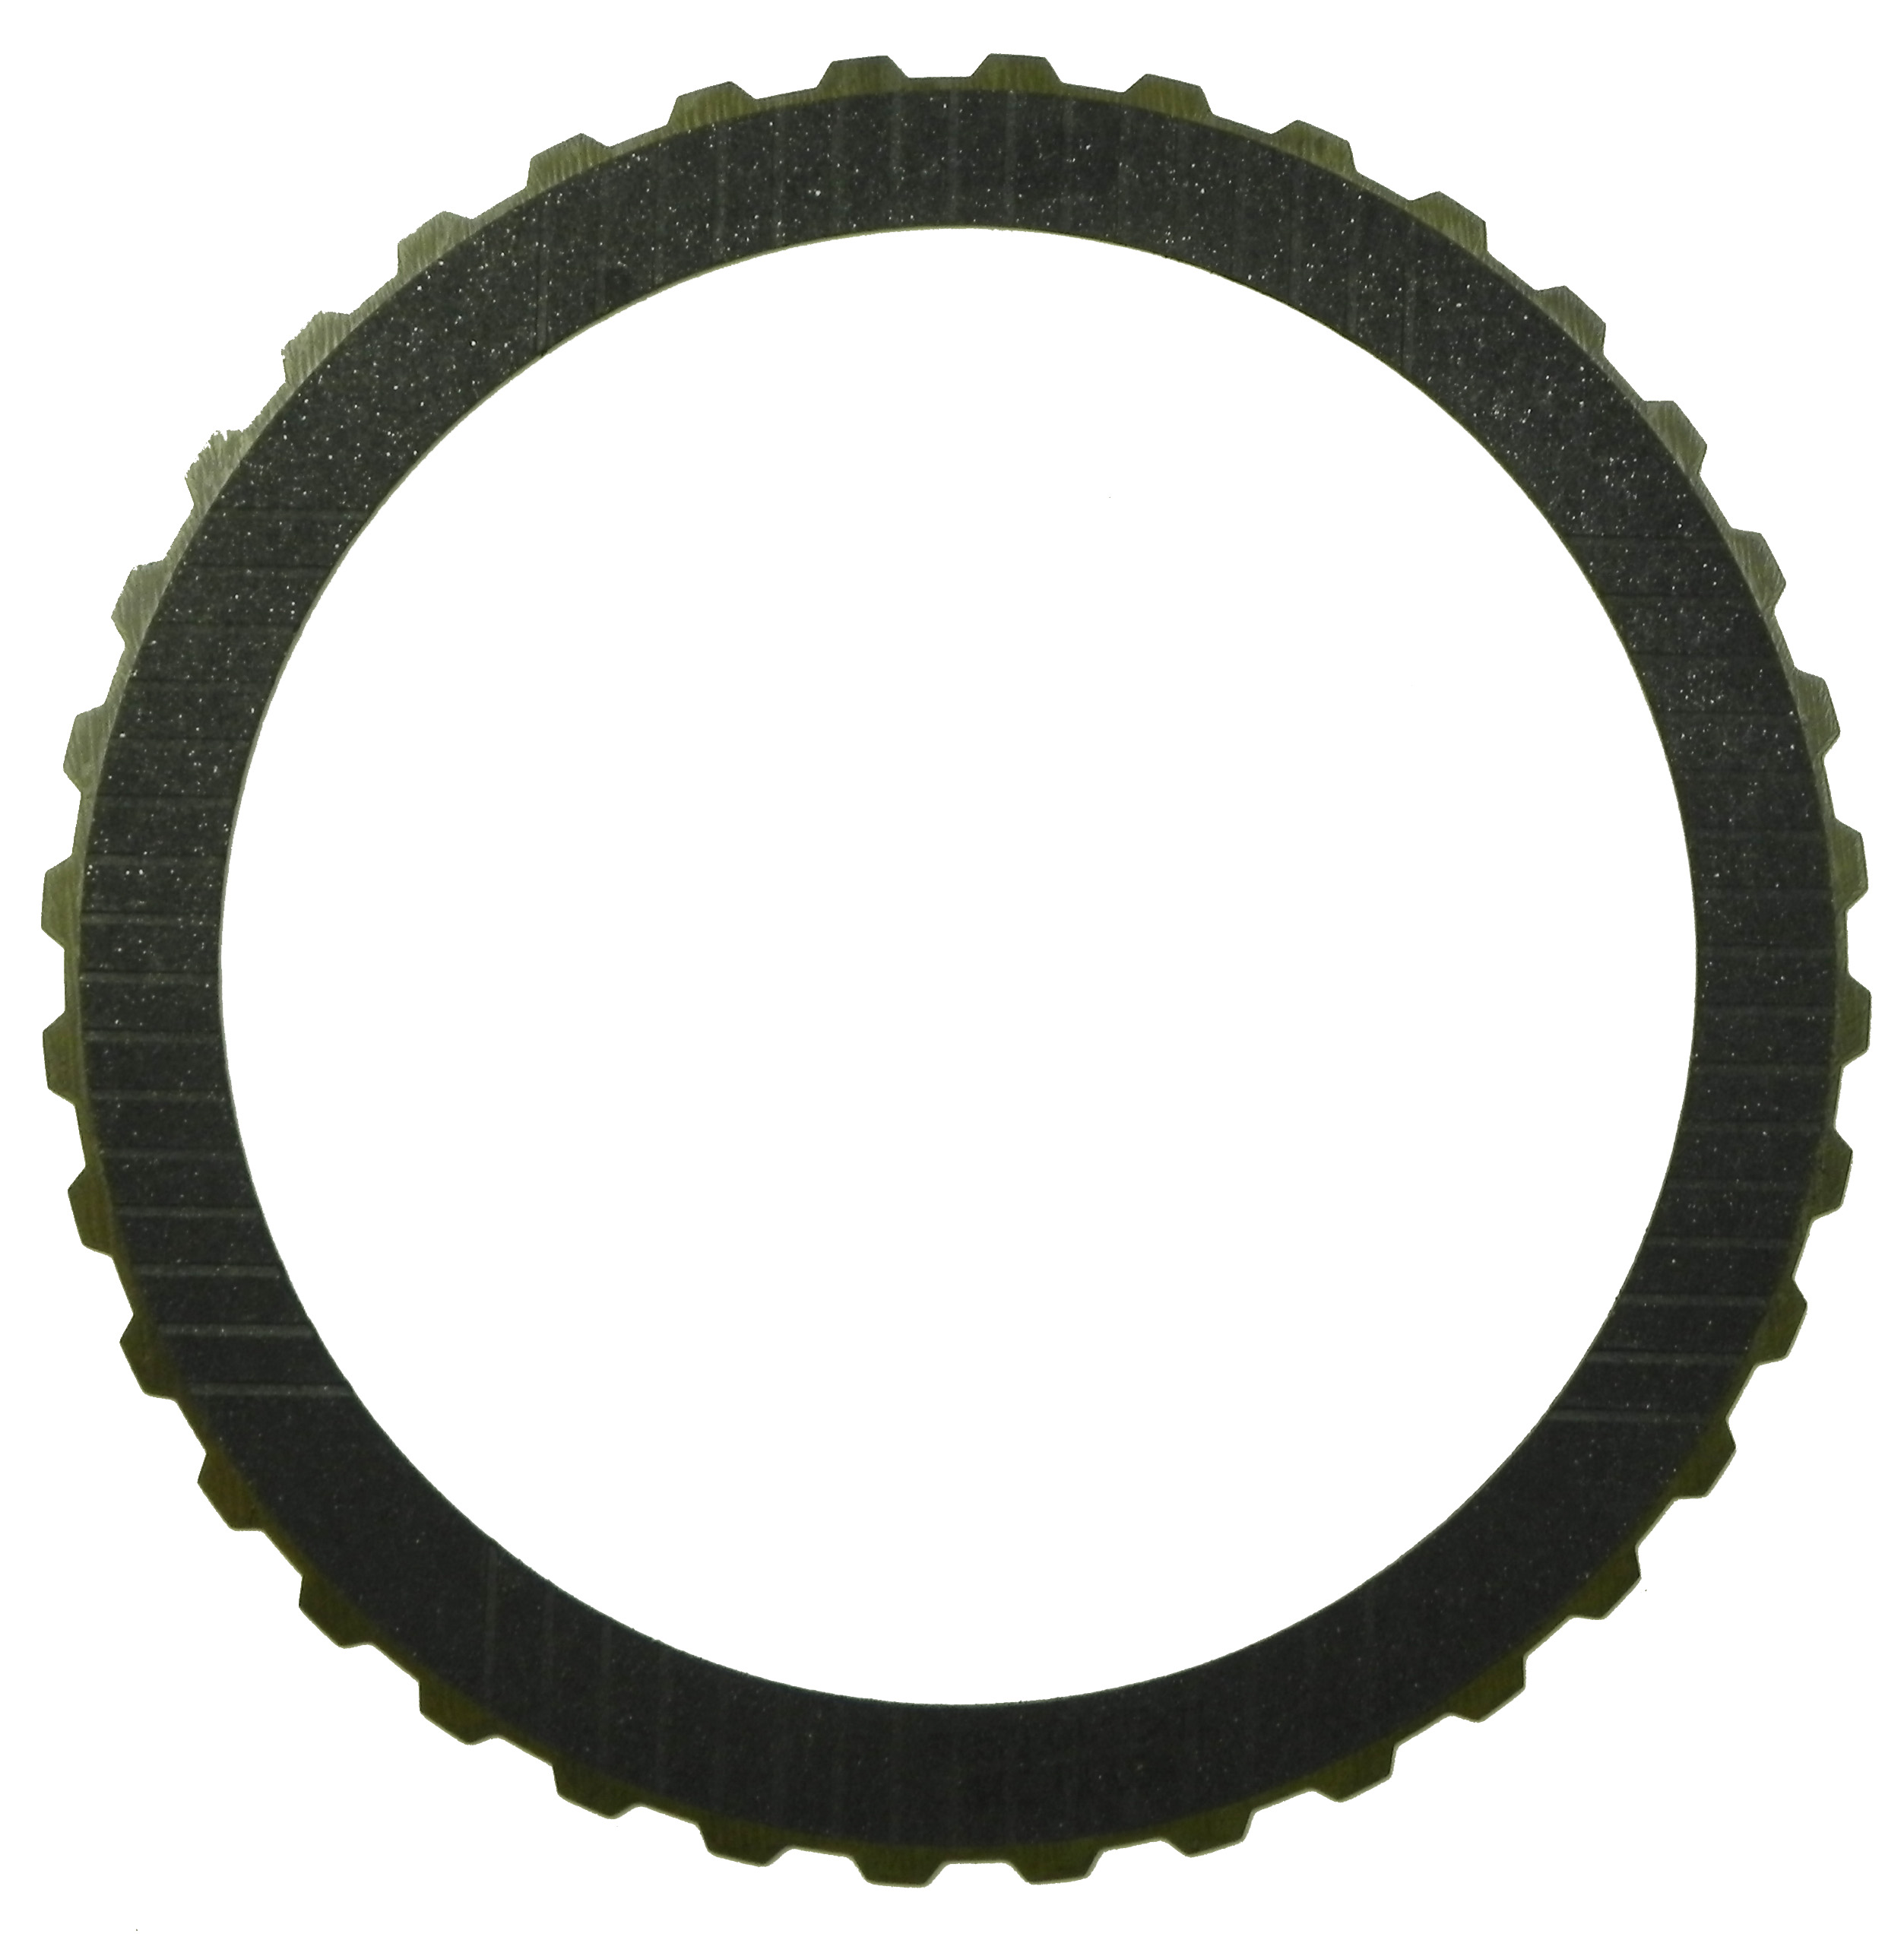 R558570 | 2008-2011 Friction Clutch Plate High Energy 3, 5, Reverse Clutch High Energy External Spline